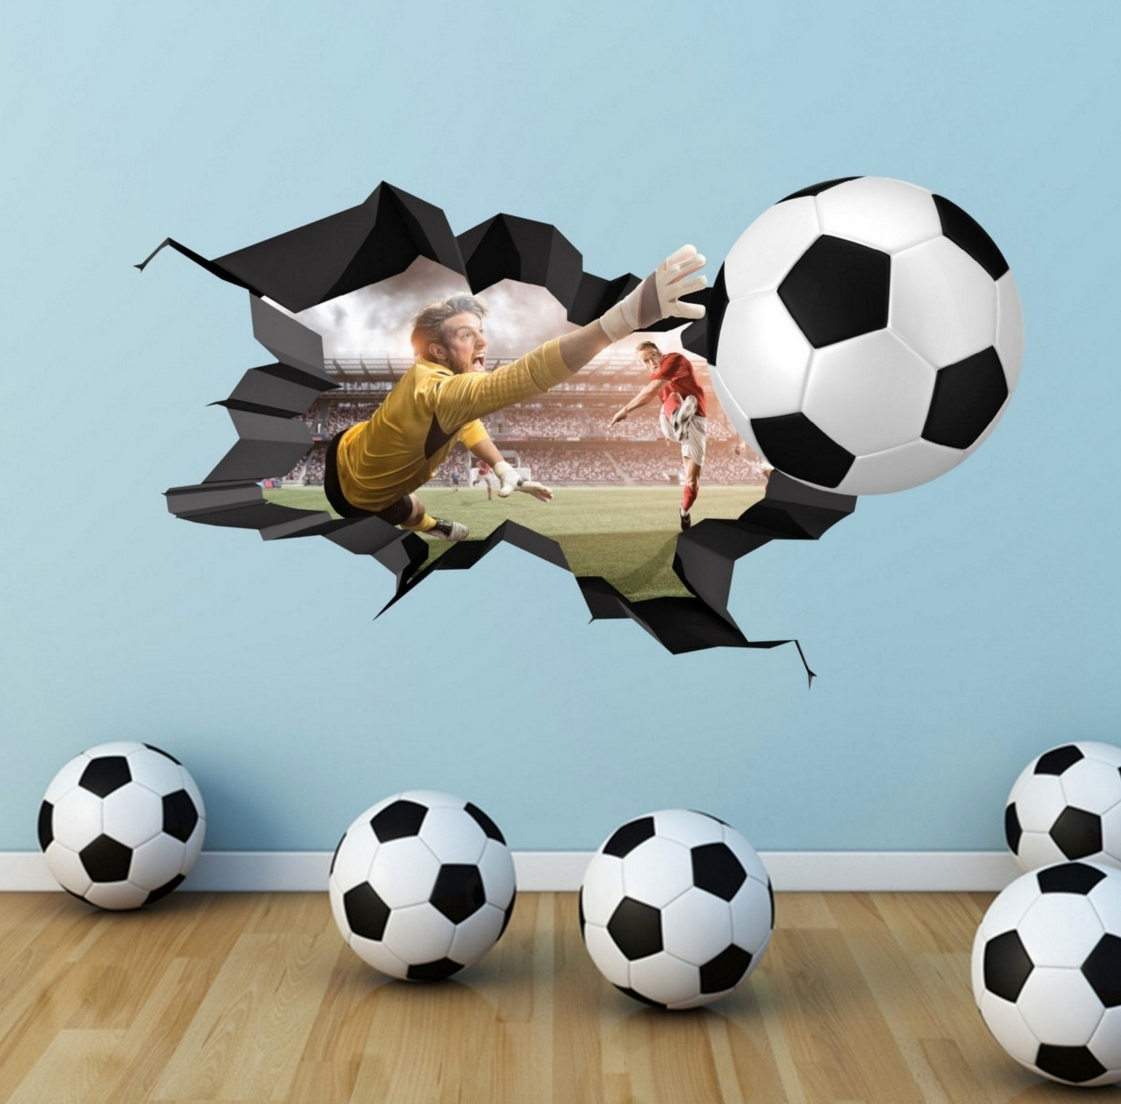 Unique Soccer Ball Wall Decor Gallery | Wall Decoration 2018 intended for 2018 Soccer Wall Art